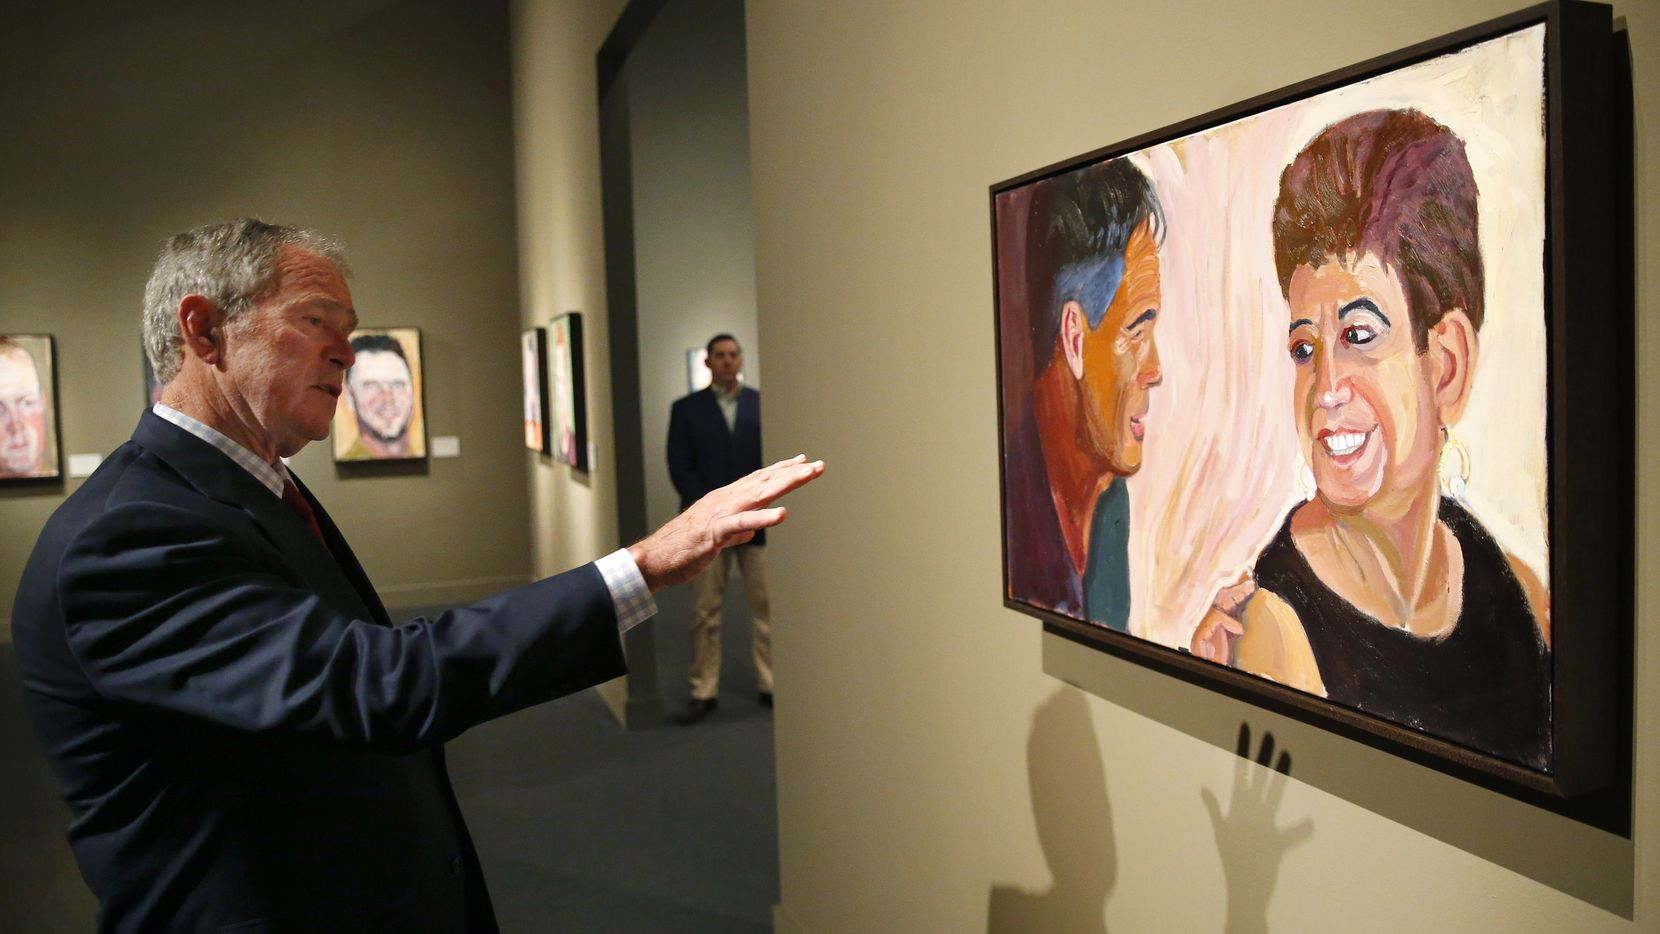 Former President George W. Bush describes the technique he used to make an oil painting of retired U.S. Air Force Master Sgt. Roque Urena during a private tour of 'Portraits of Courage, A Commander In Chief 's Tribute To America's Warriors' exhibit which showcases his oil paintings at the George W. Bush Presidential Center in University Park, Texas, Friday, February 24, 2017.  On display are 66 full-color portraits and a four-panel mural of United States military who've served with honor since 9/11Ñand whom Bush has come to know personally over the years. It opens March 2nd and runs through October 1st.